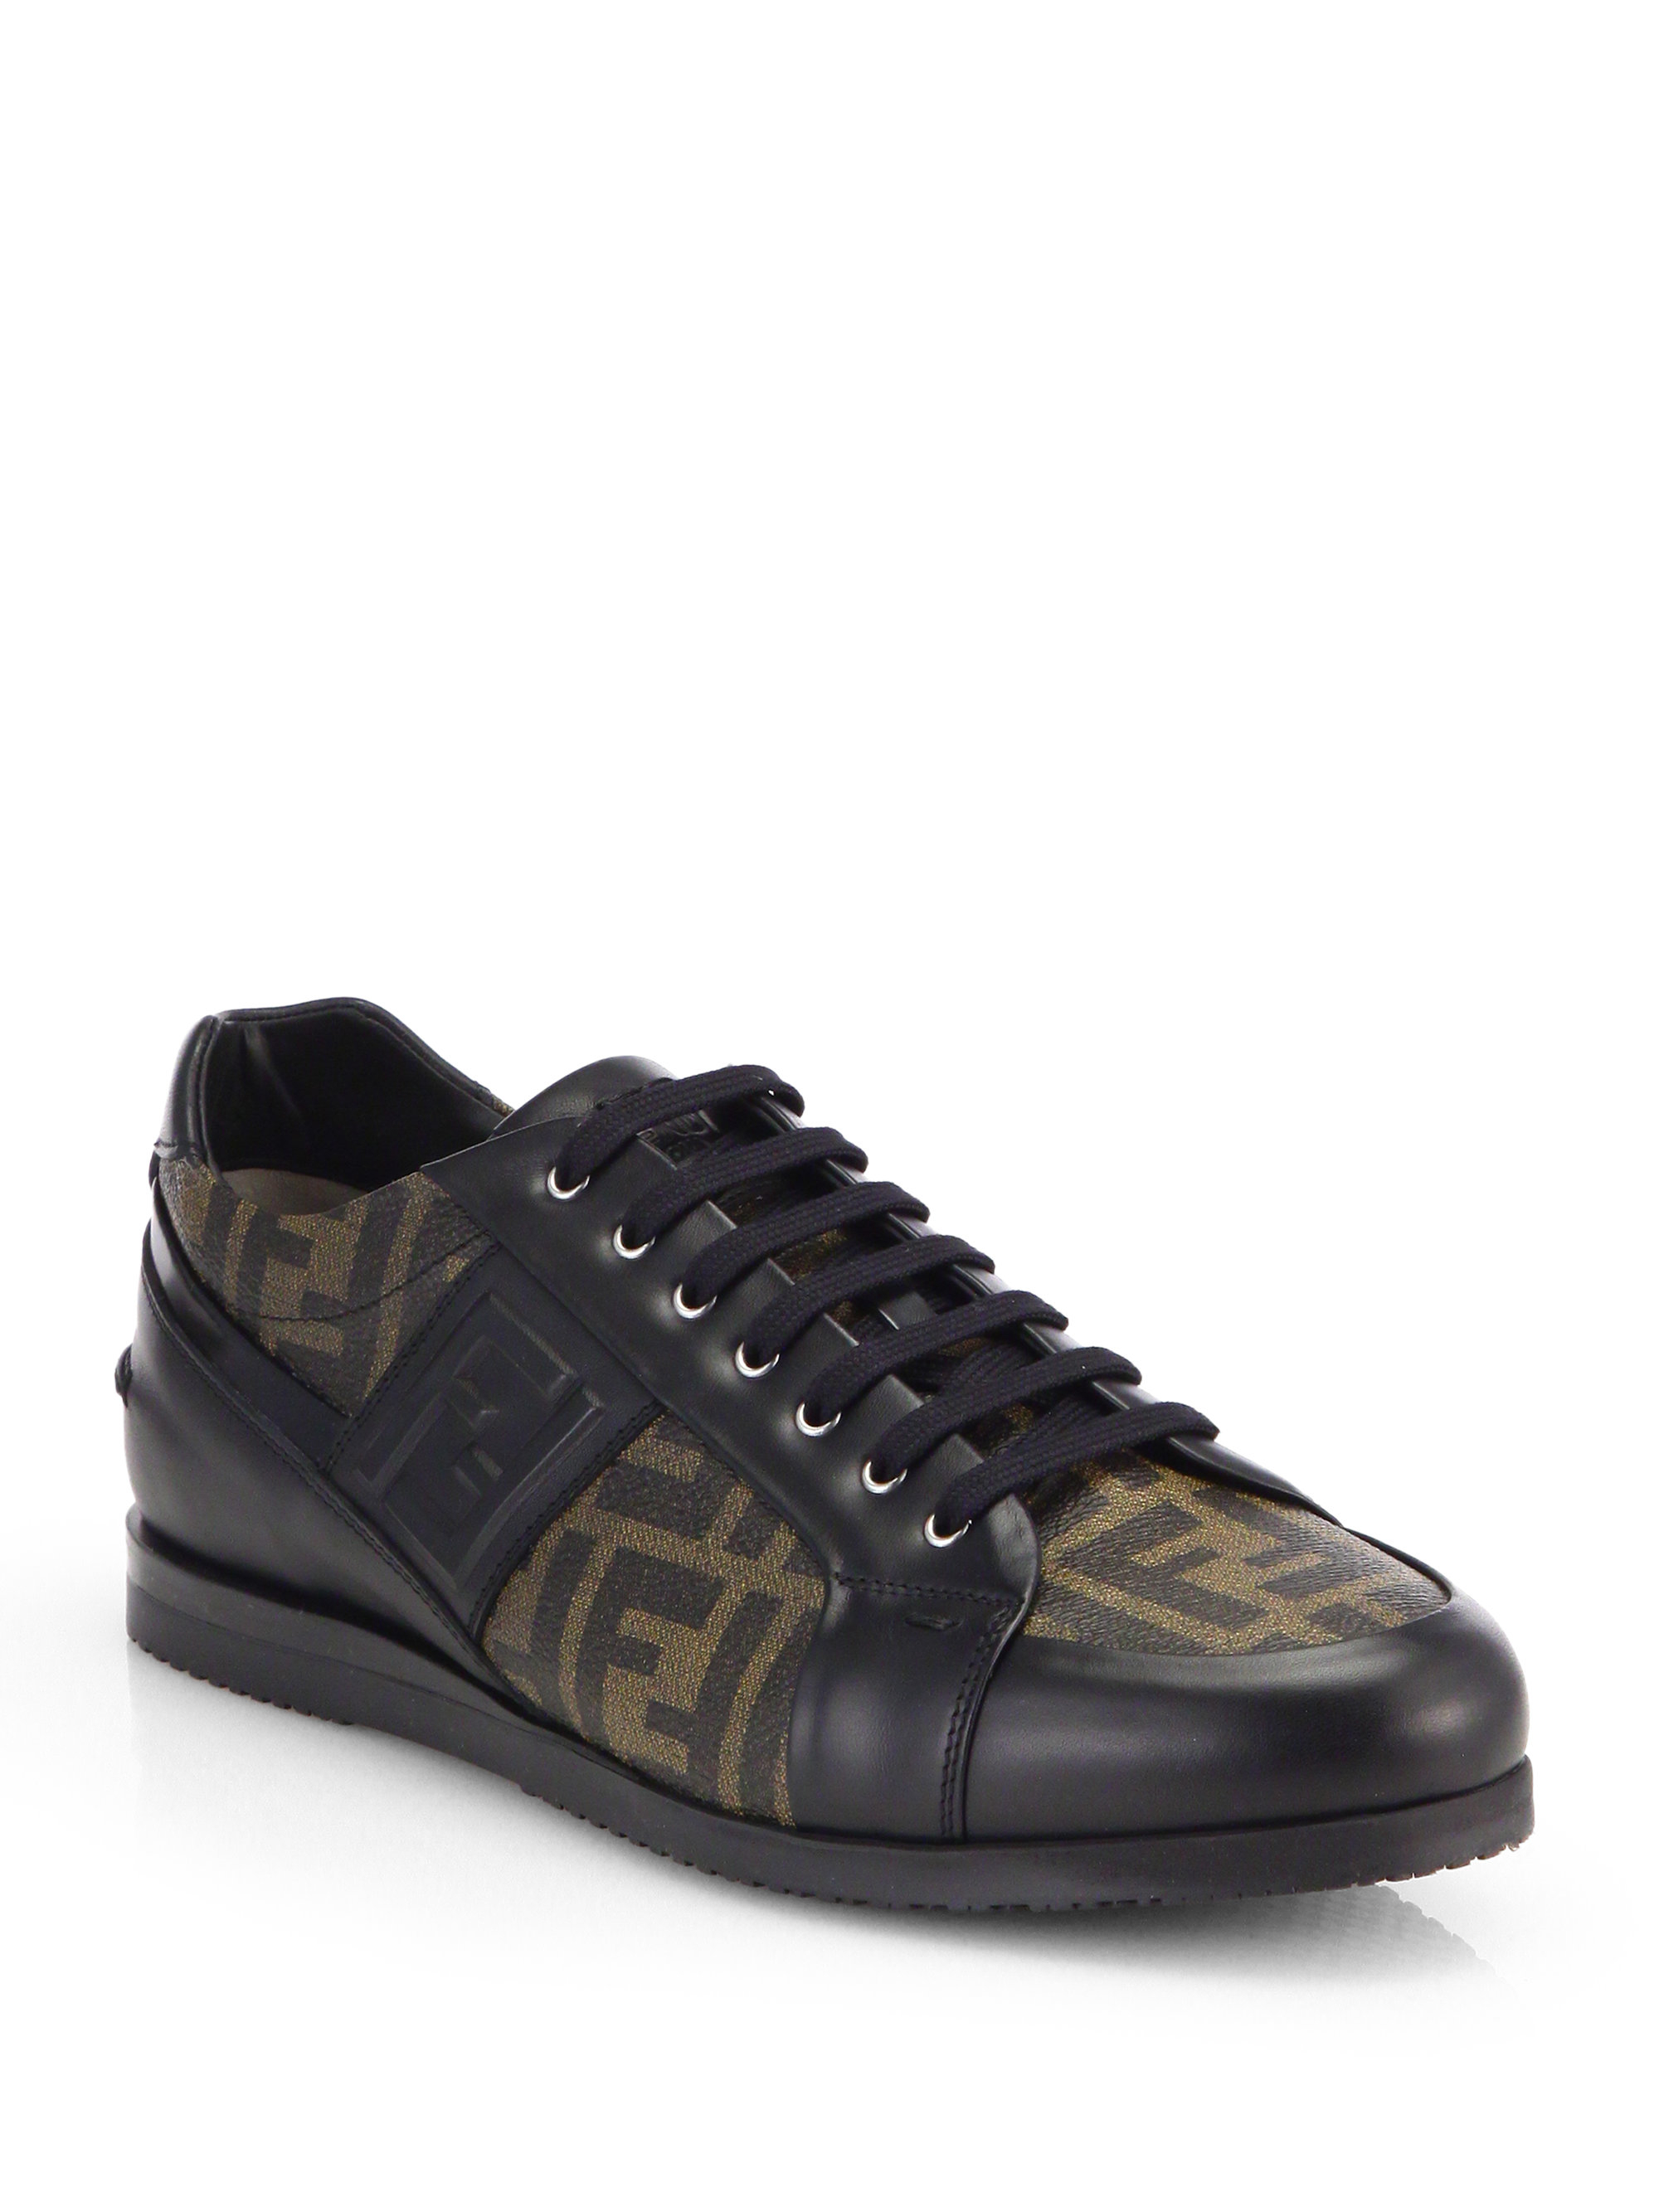 fendi zucca softy lace up leather sneakers in brown for